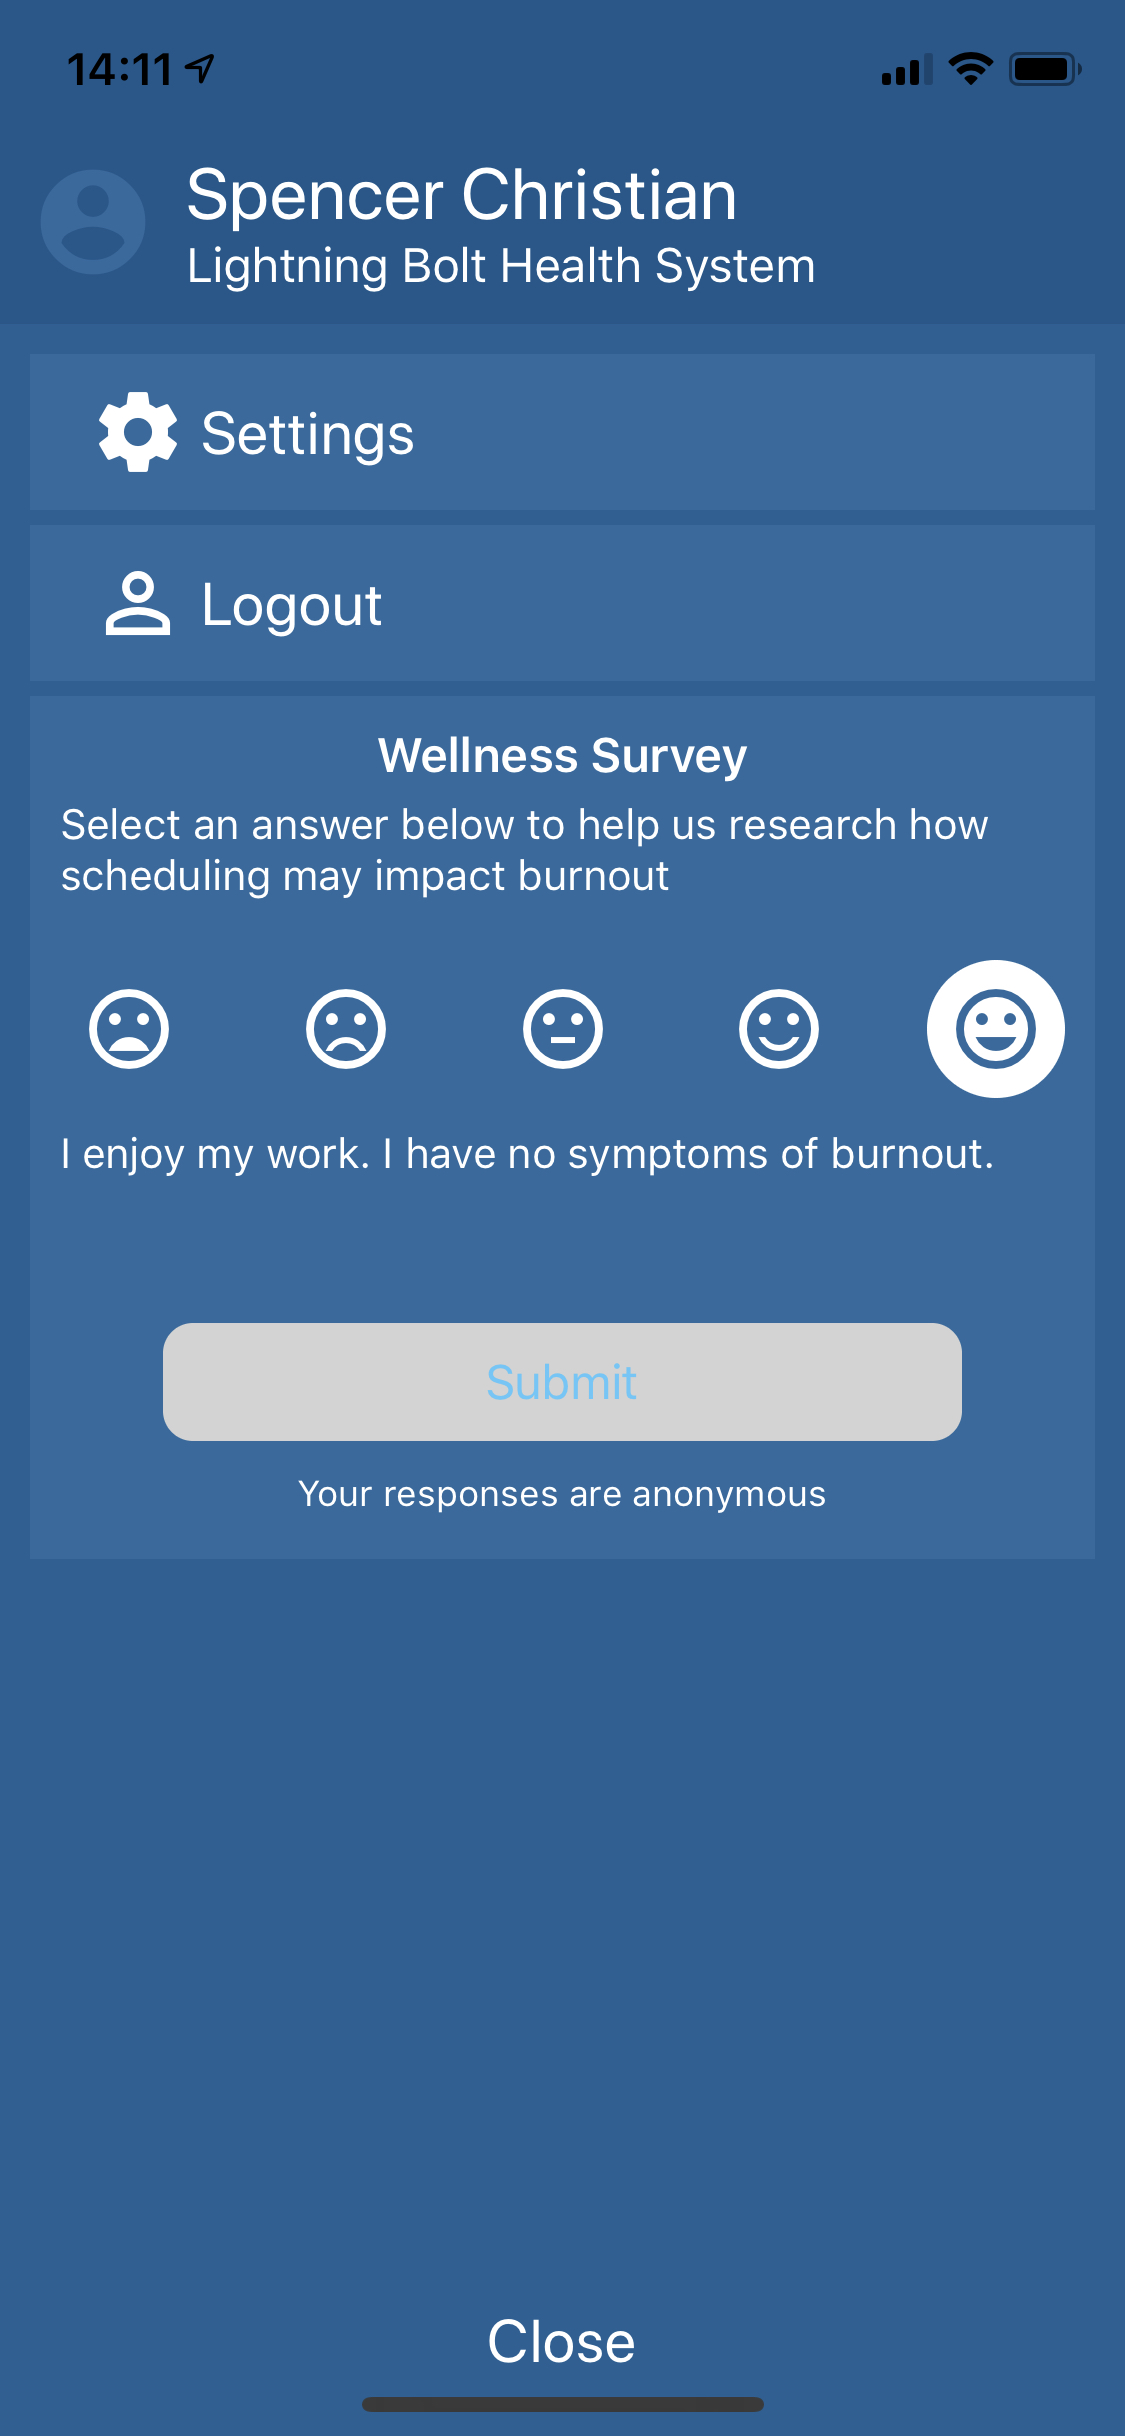 Picture of the wellness survey that physicians can complete as part of the Pathology of Burnout Initiative.